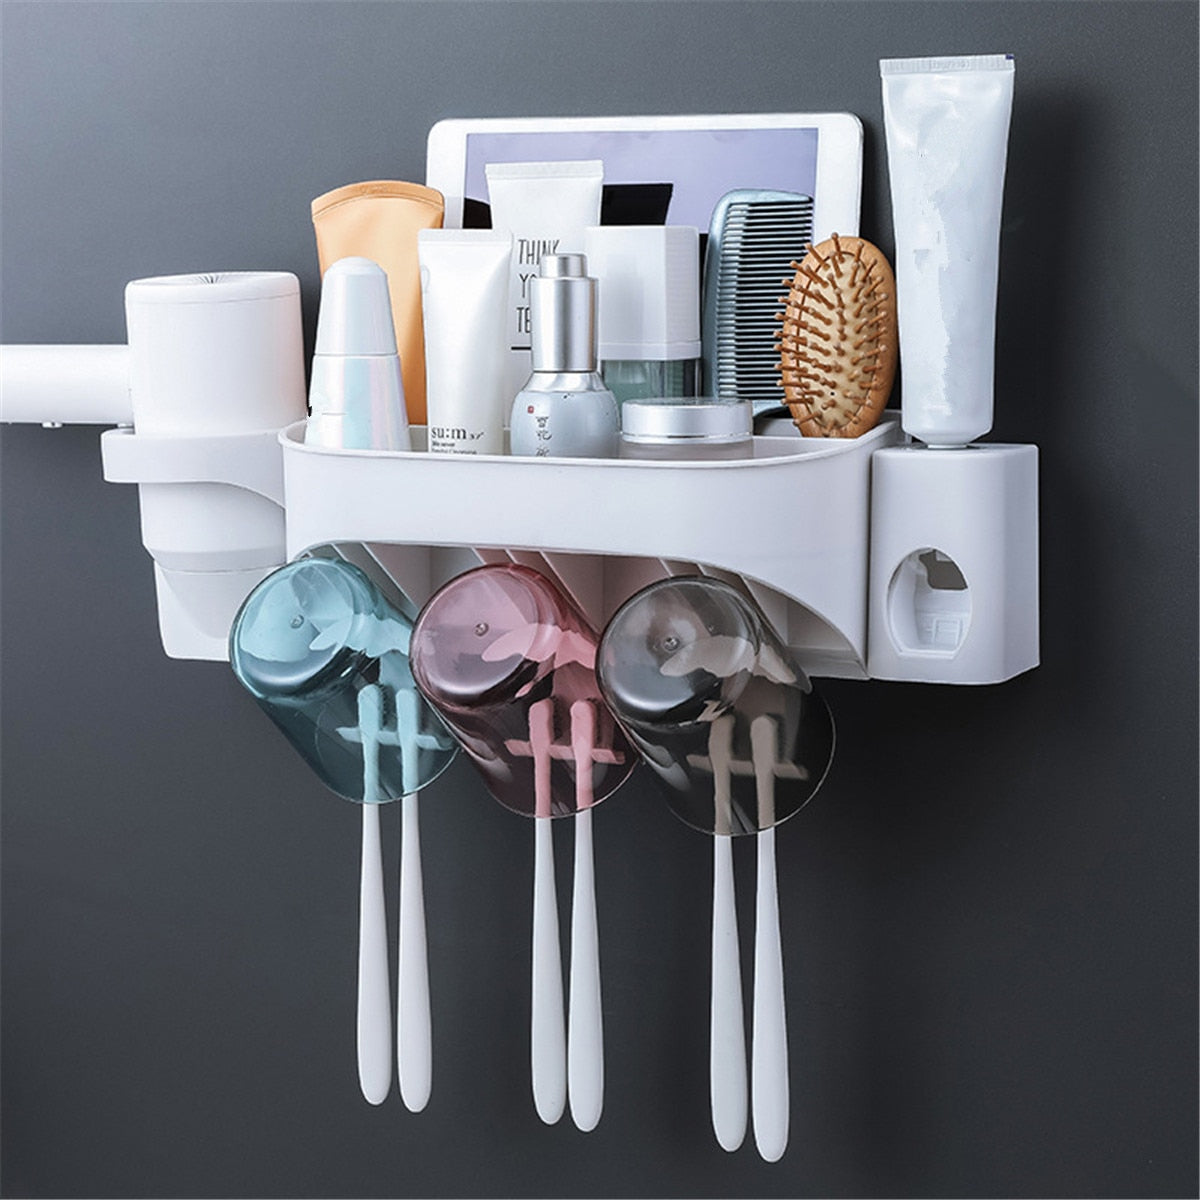 Home Best Toothbrush Holder With Toothpaste Dispensers Cups Slots